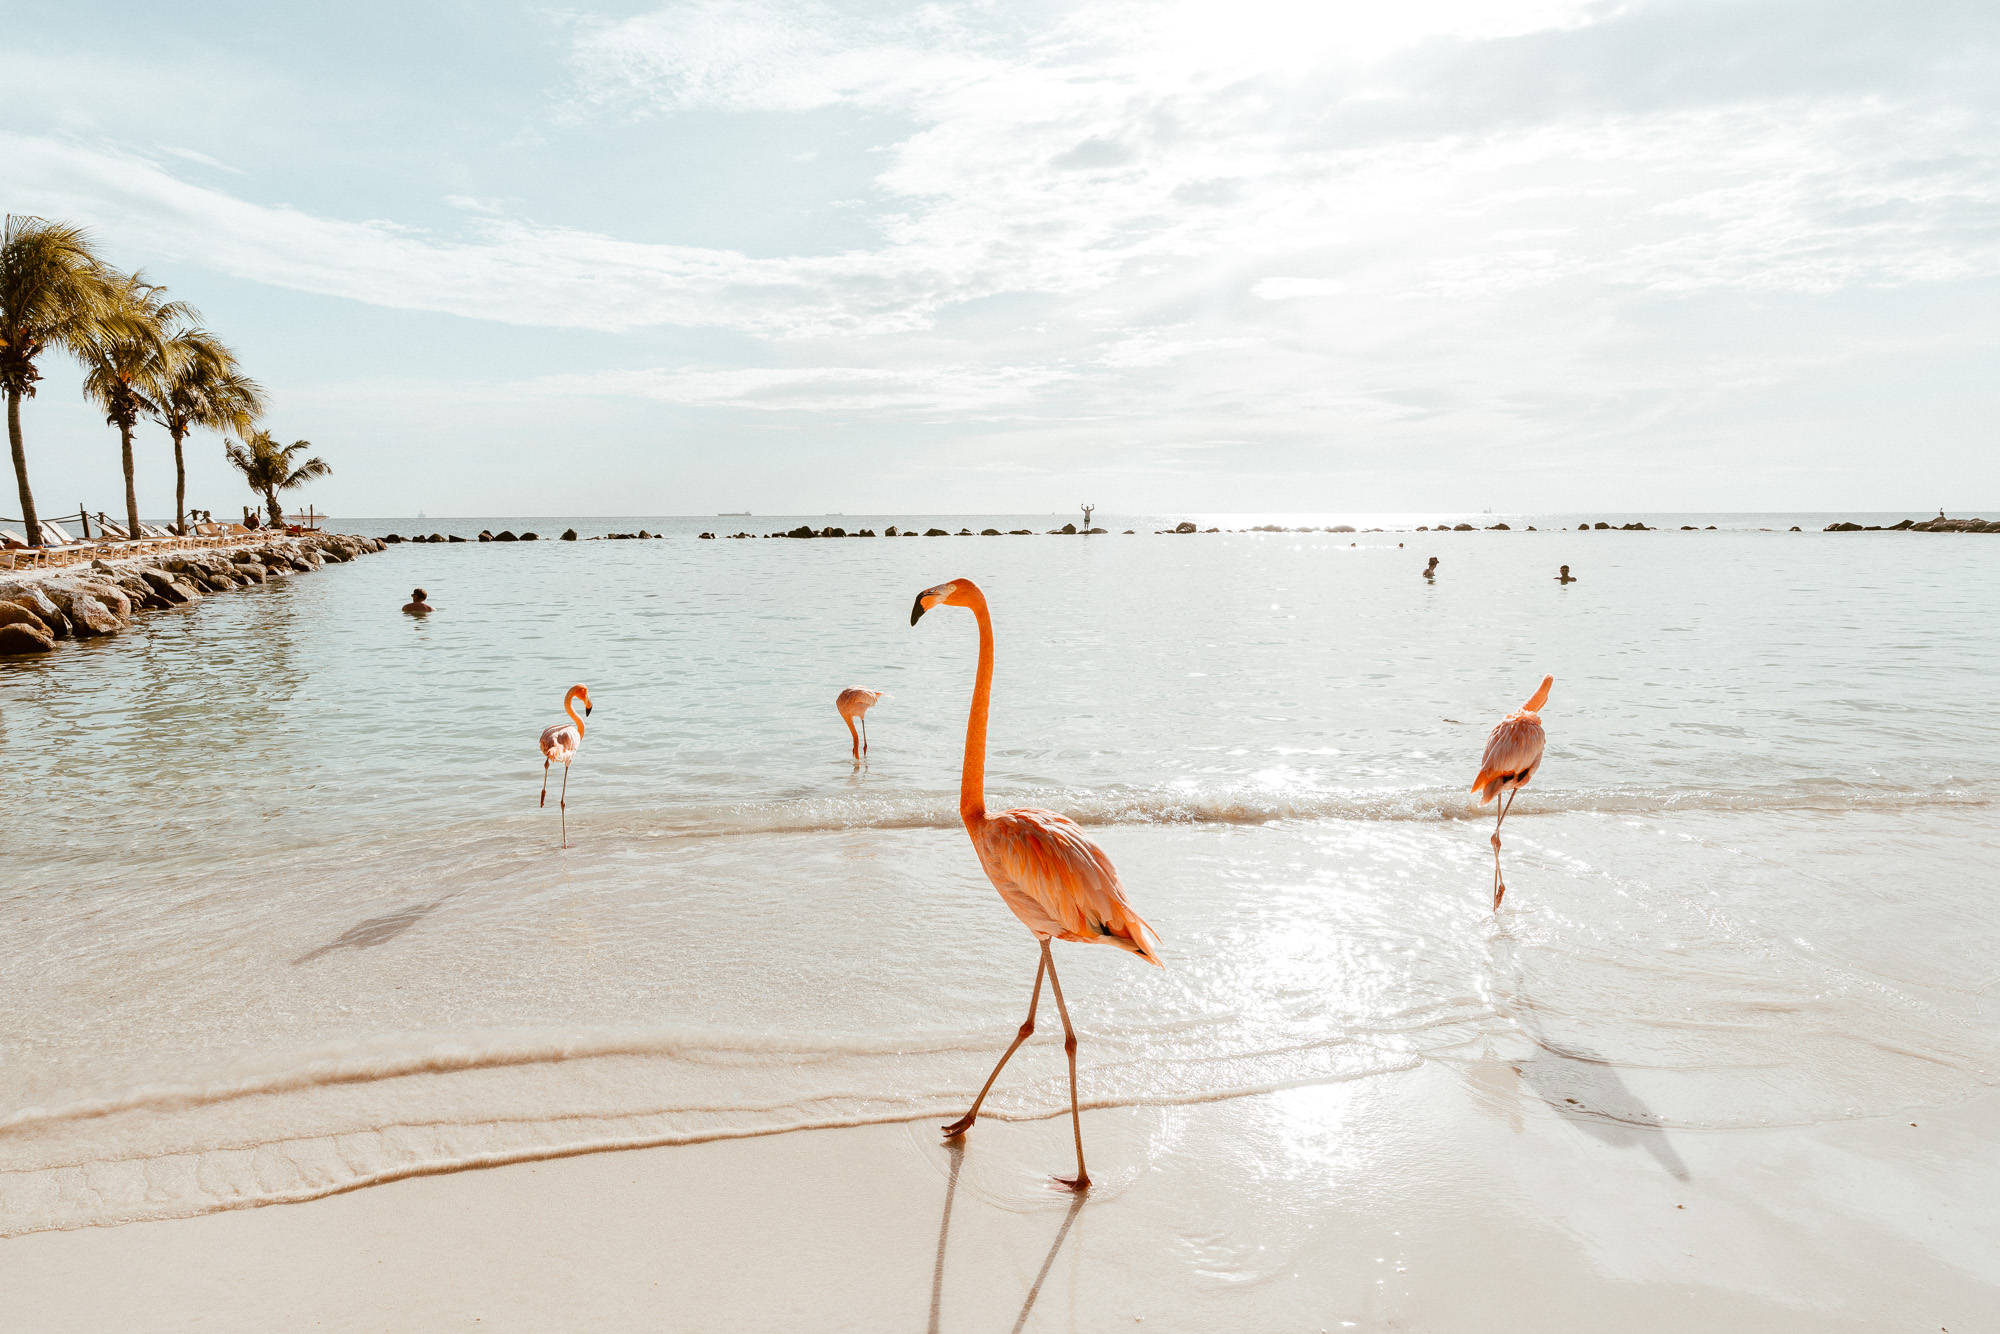 Flamingos on the beach in Aruba via Find Us Lost